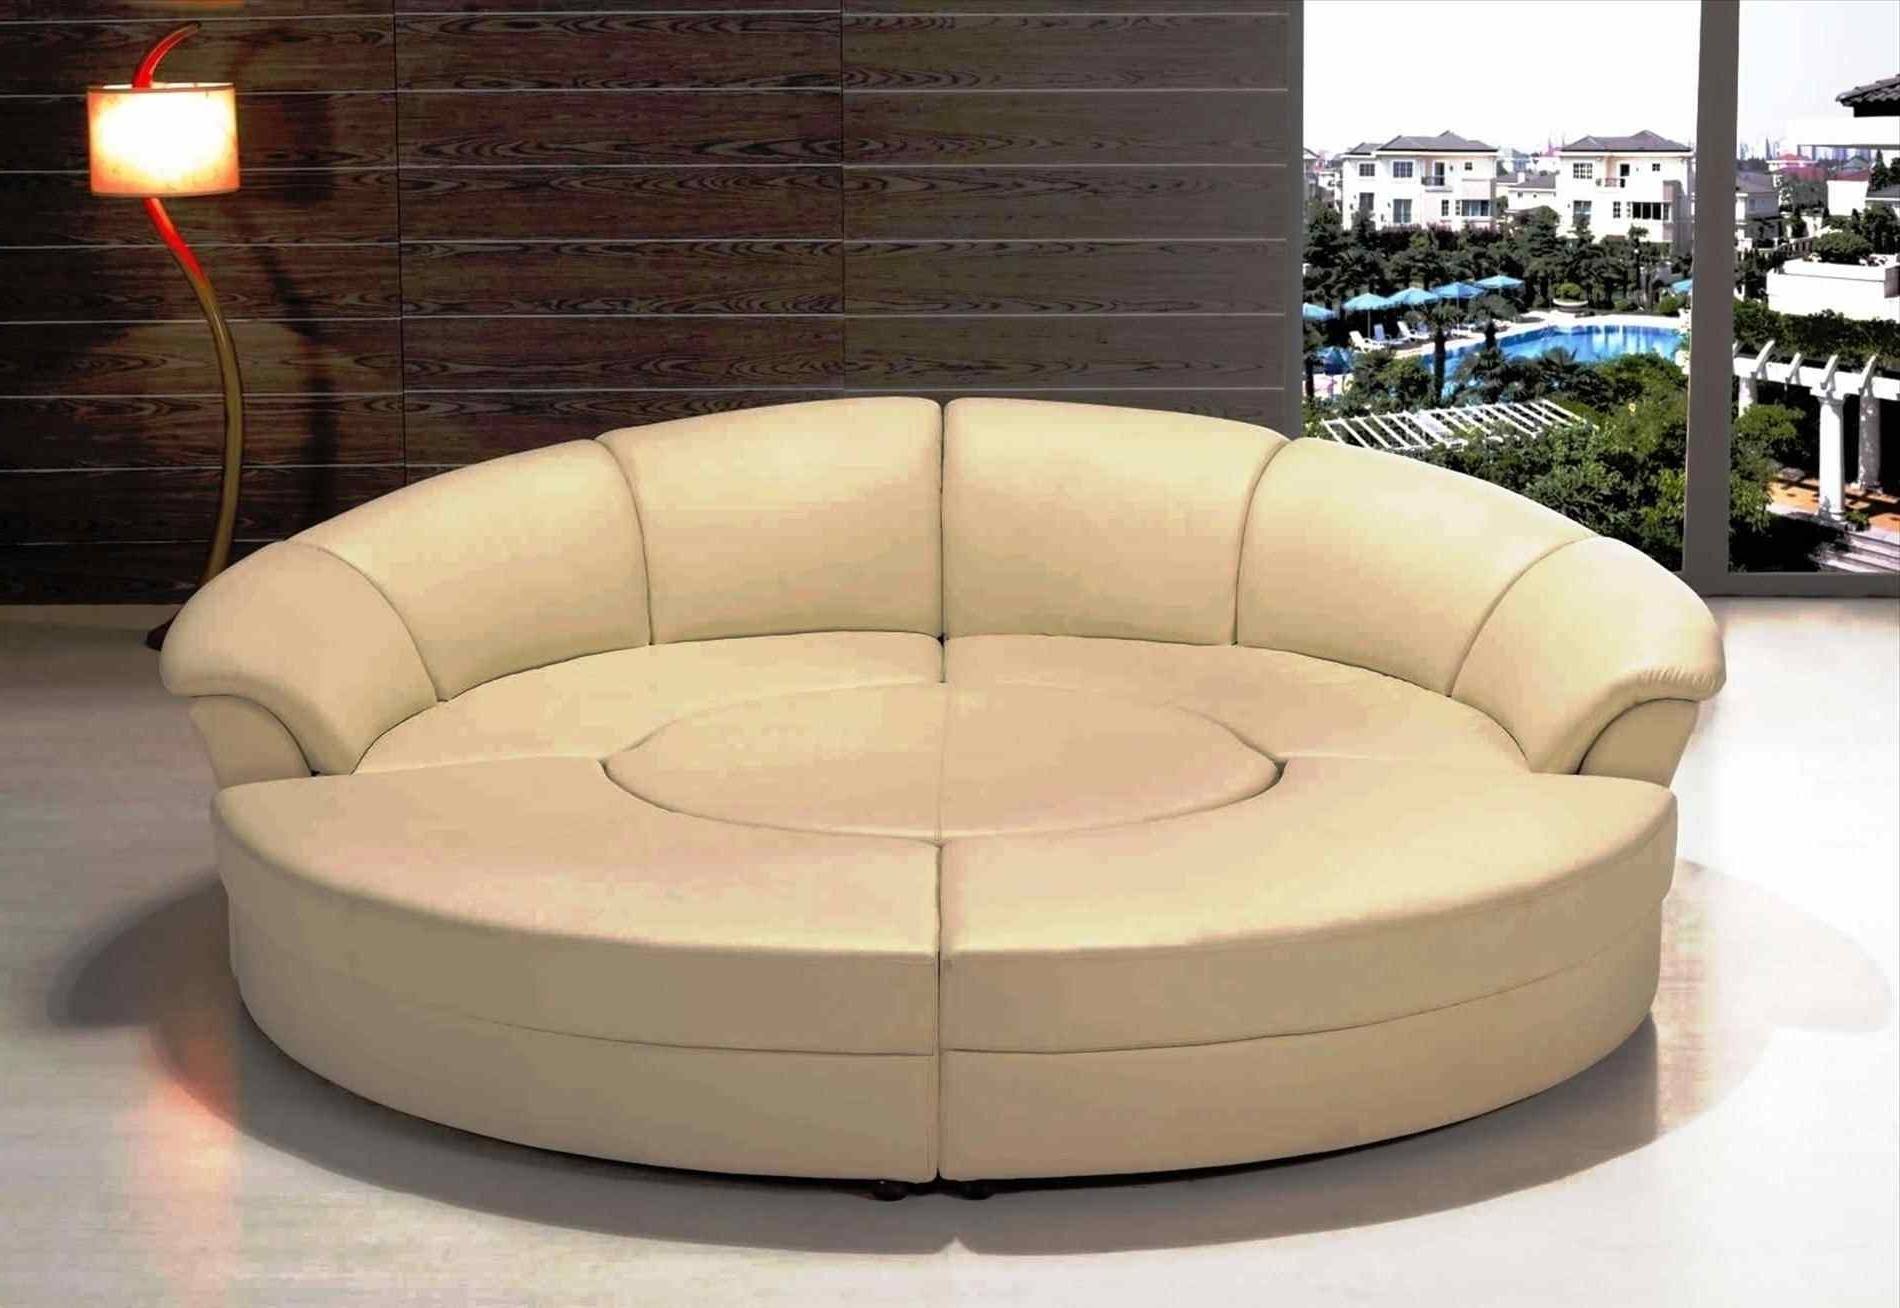 Circle Sofas Intended For Fashionable Couch : Furniture Circle Couch Manstad Sofa Bed For Cozy Living (View 11 of 20)